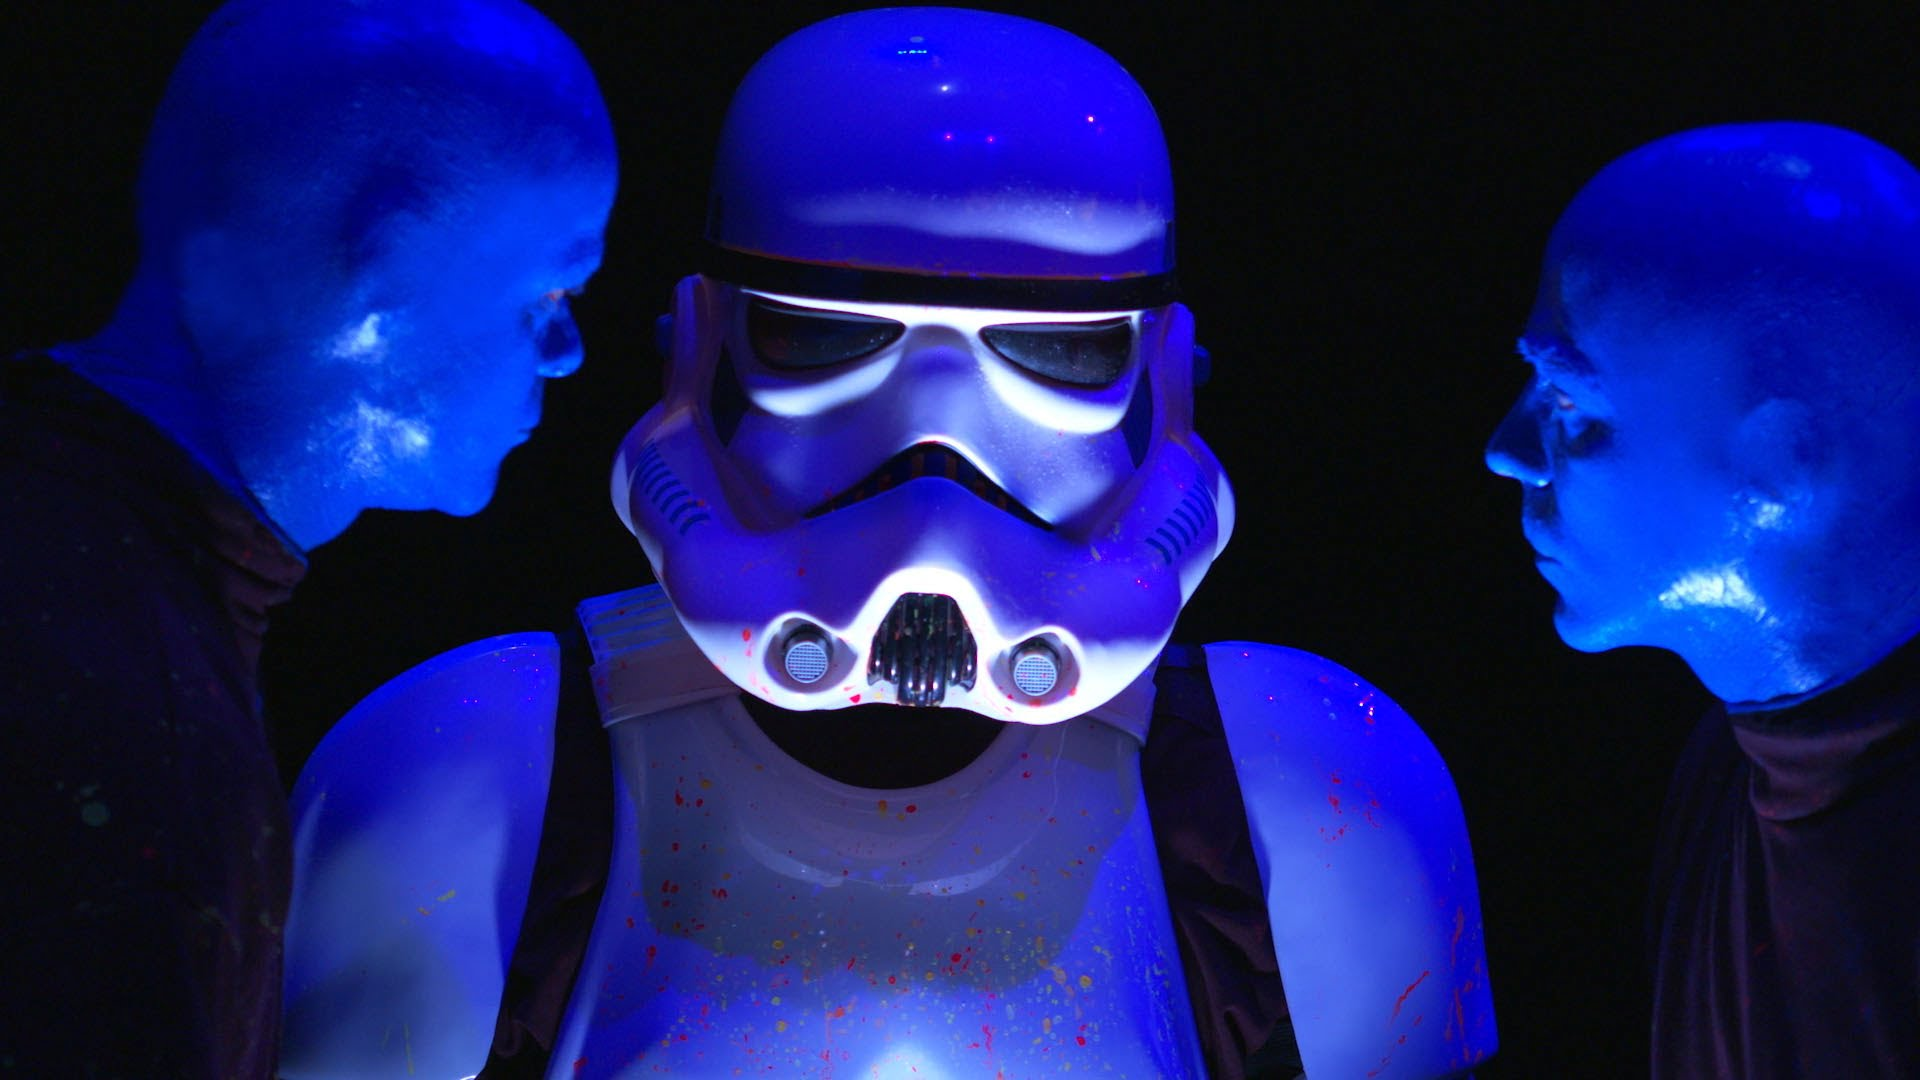 Meet The Blue Man Group's Latest Drummer...A Storm Trooper ...